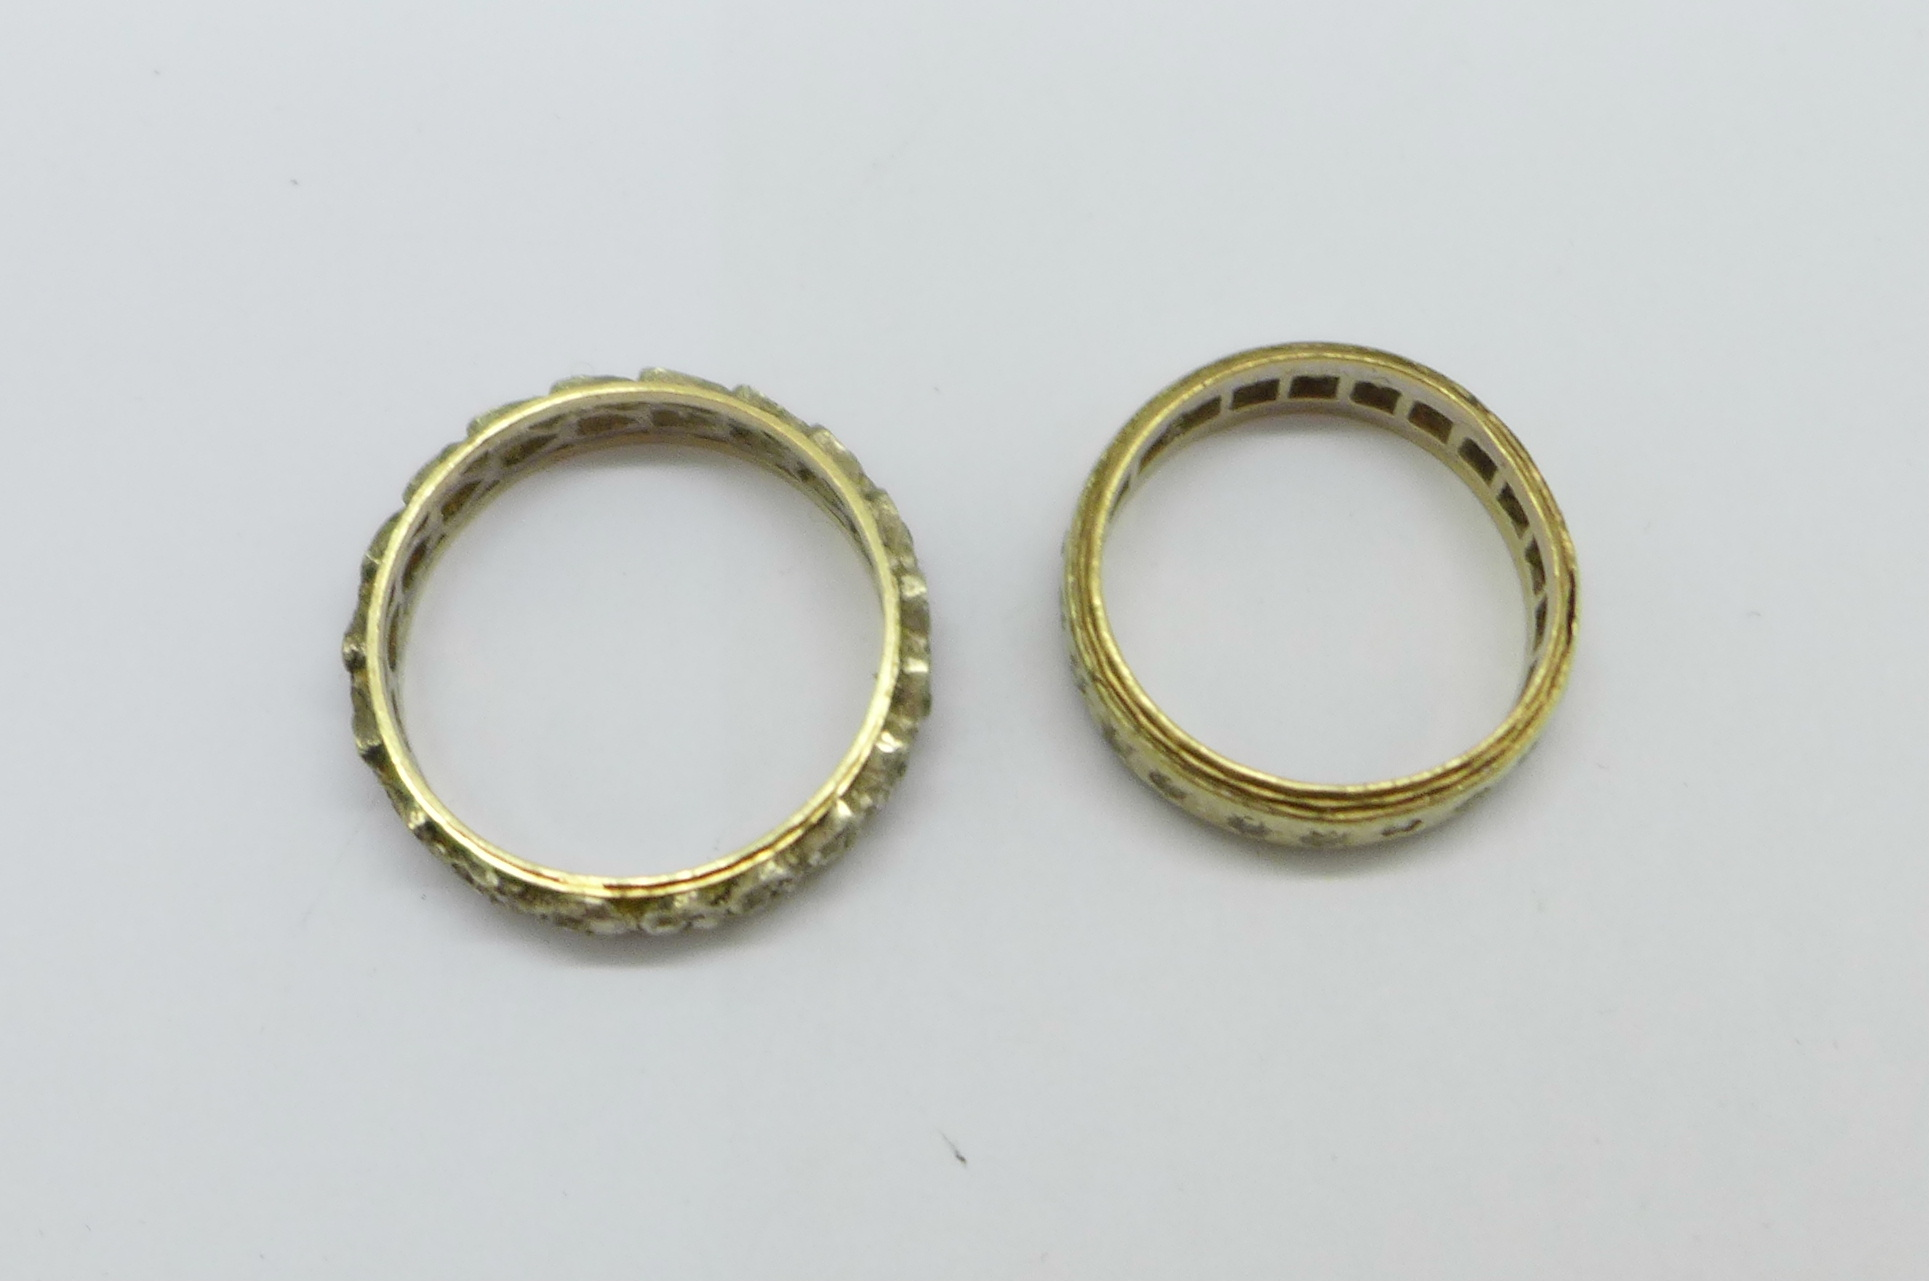 Two 9ct gold and silver rings, L and R, 5.6g - Image 3 of 3